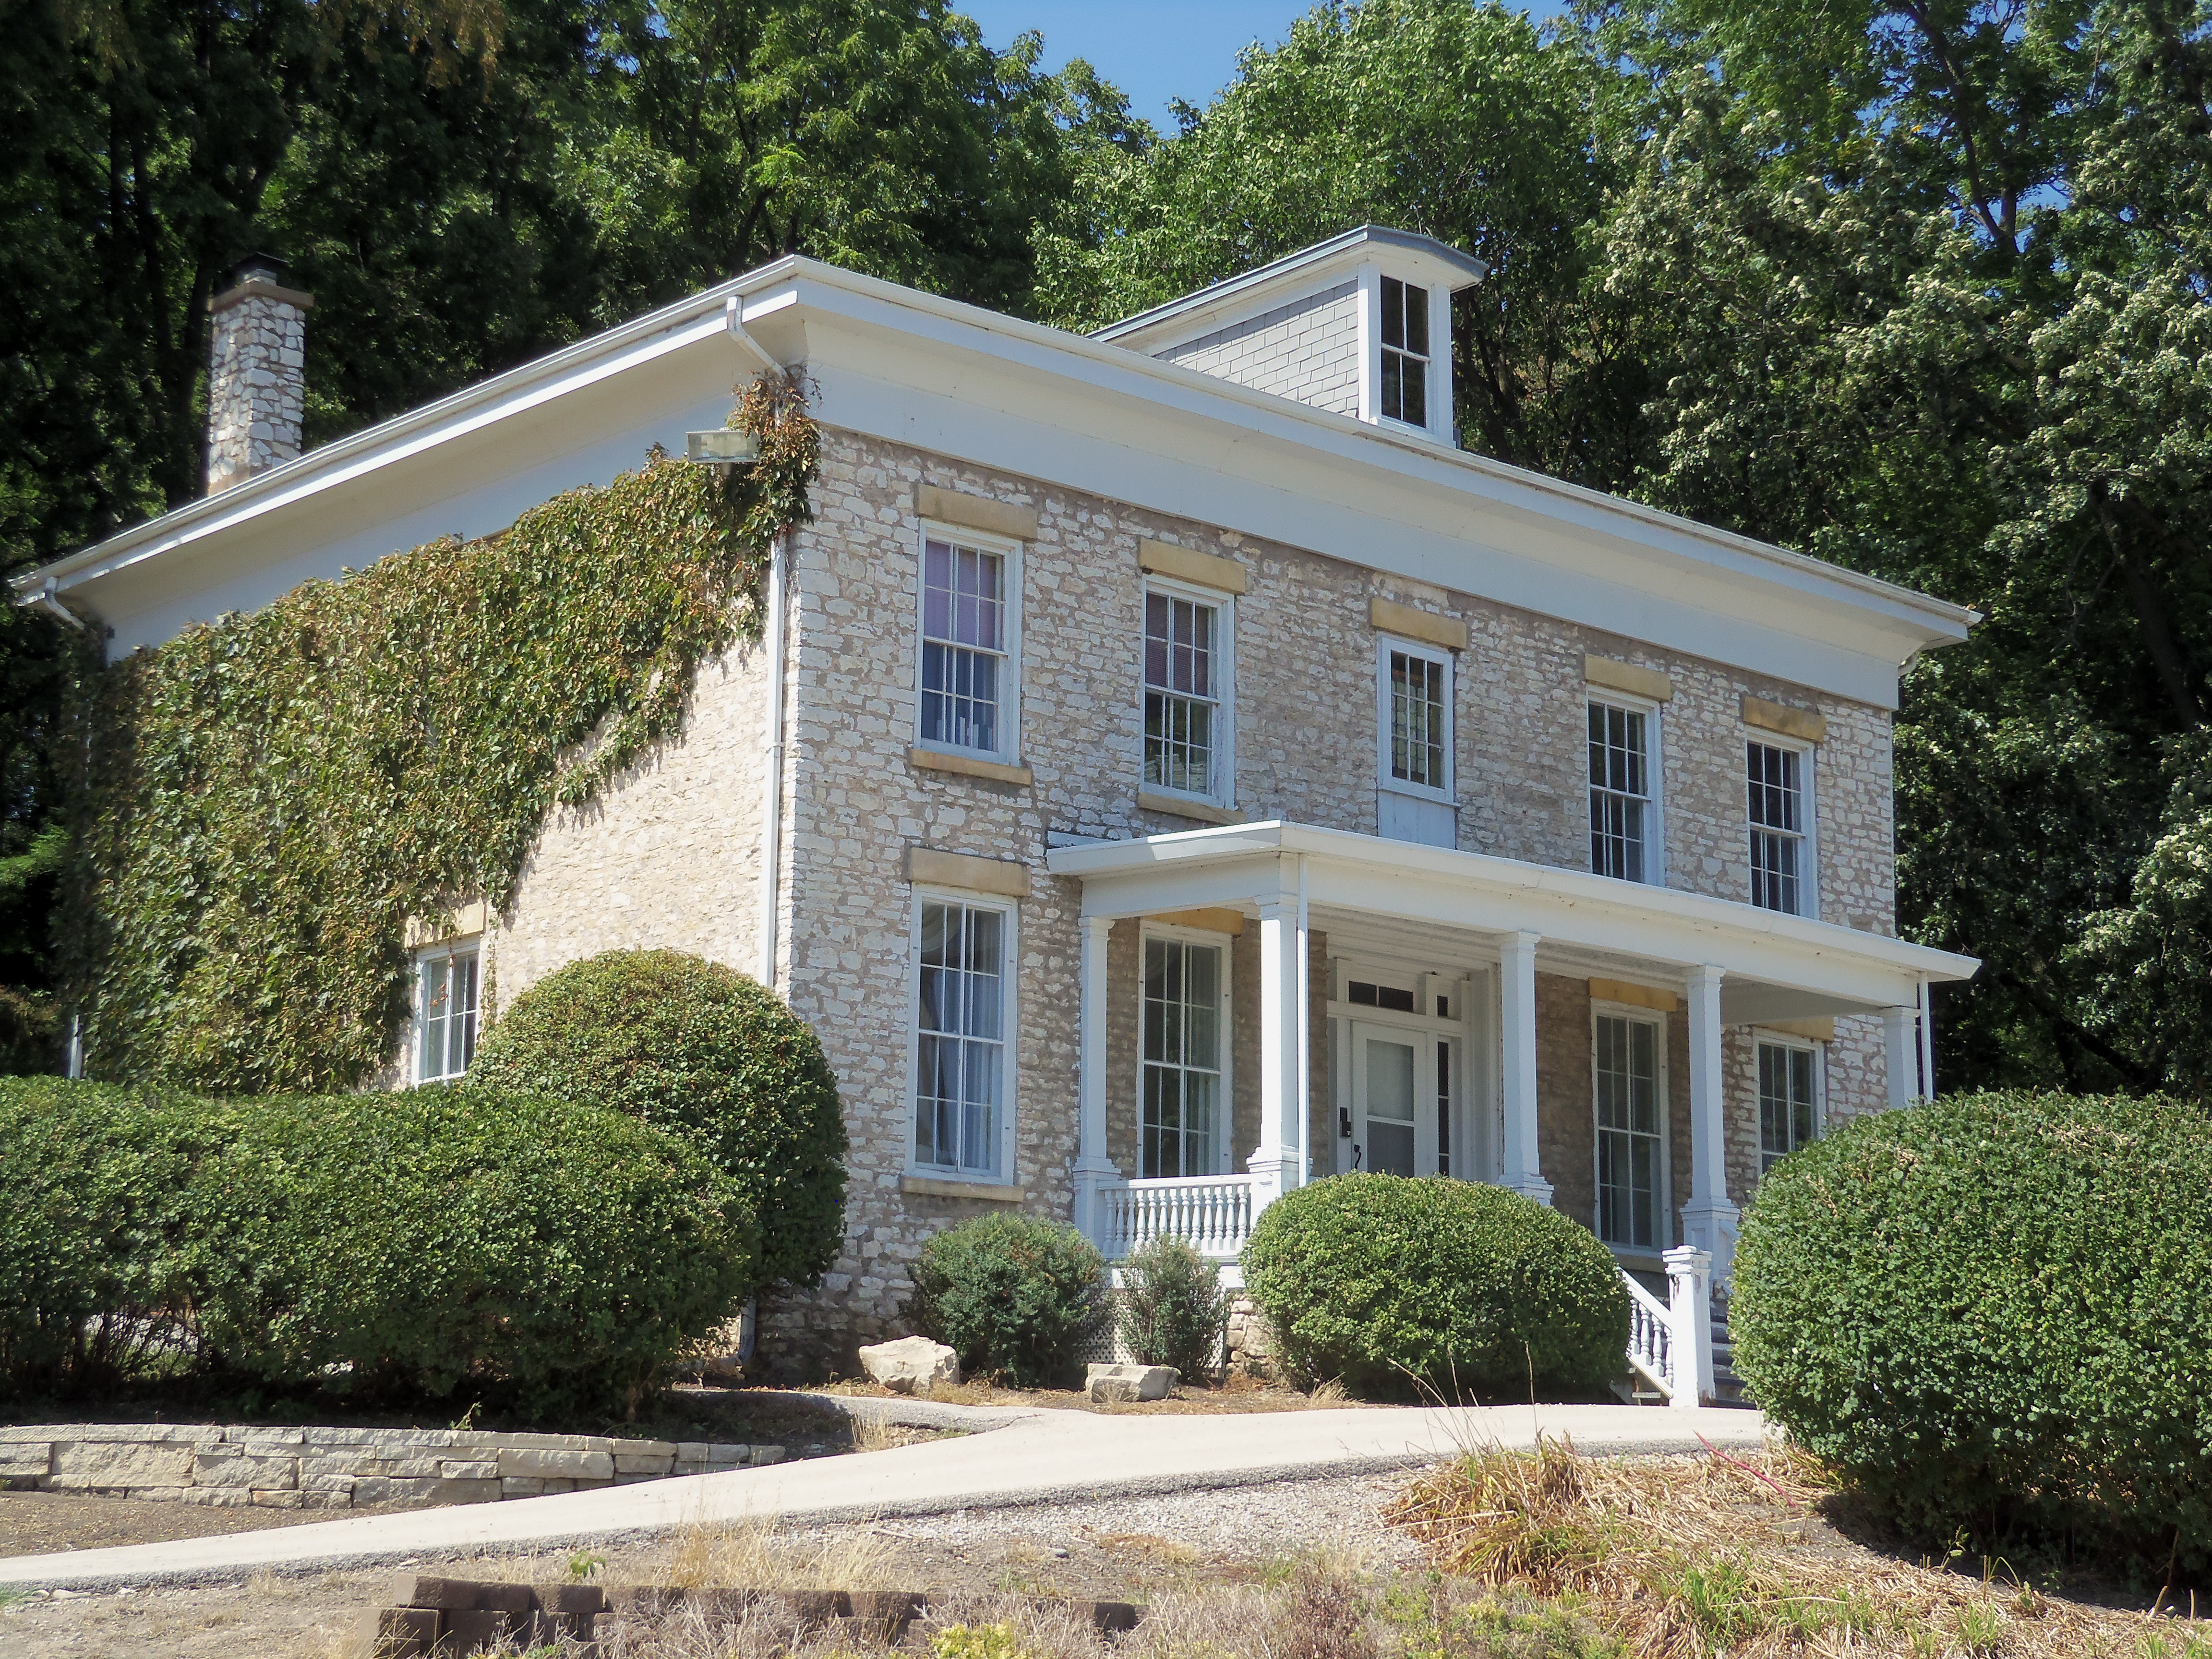 House Pic Captivating With James Brown Mansion House Photo Images Image